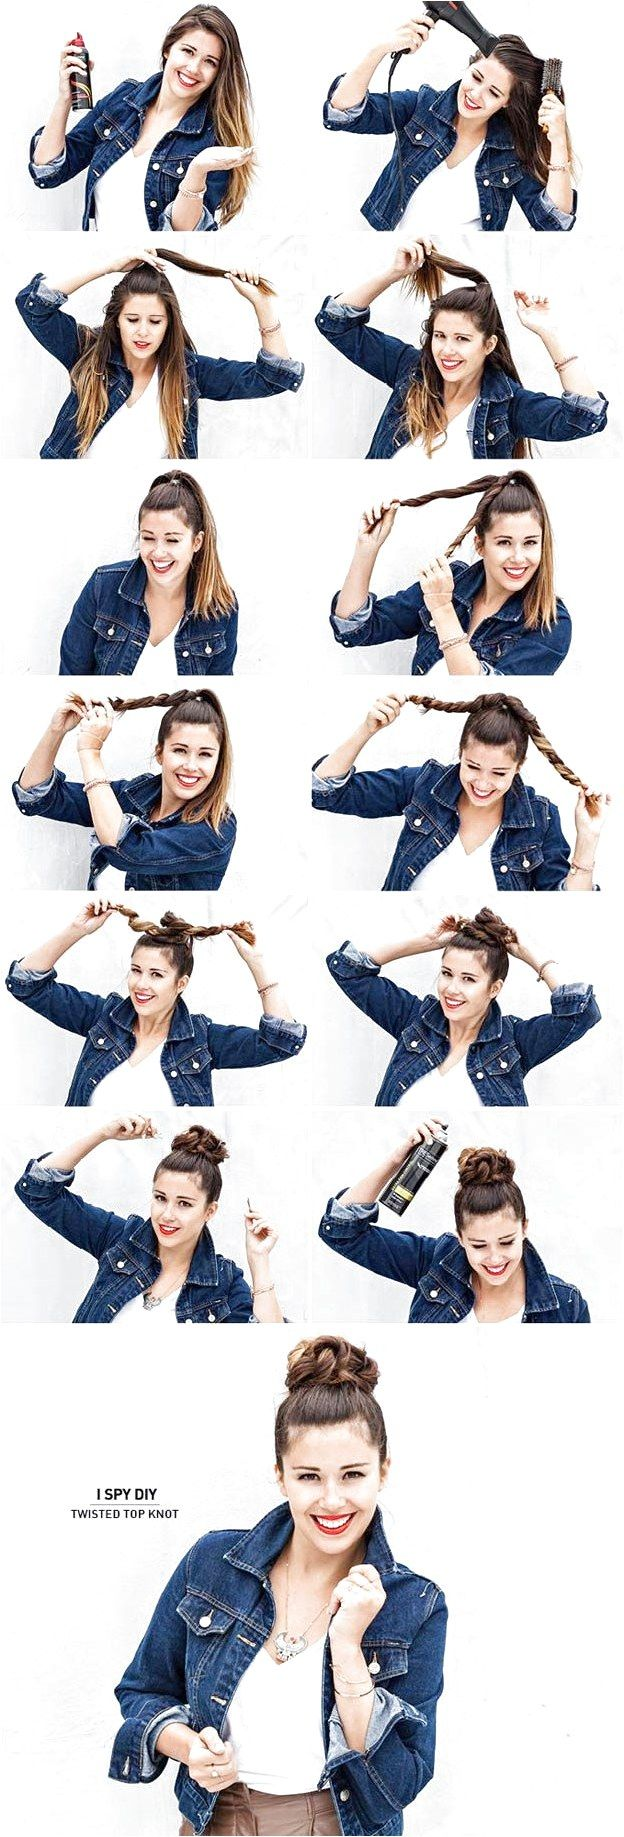 Best Hair Braiding Tutorials - Twisted Top Knot - Easy Step by Step Tutorials for Braids - How To Braid Fishtail, French Braids, Flower Crown, Side Br...